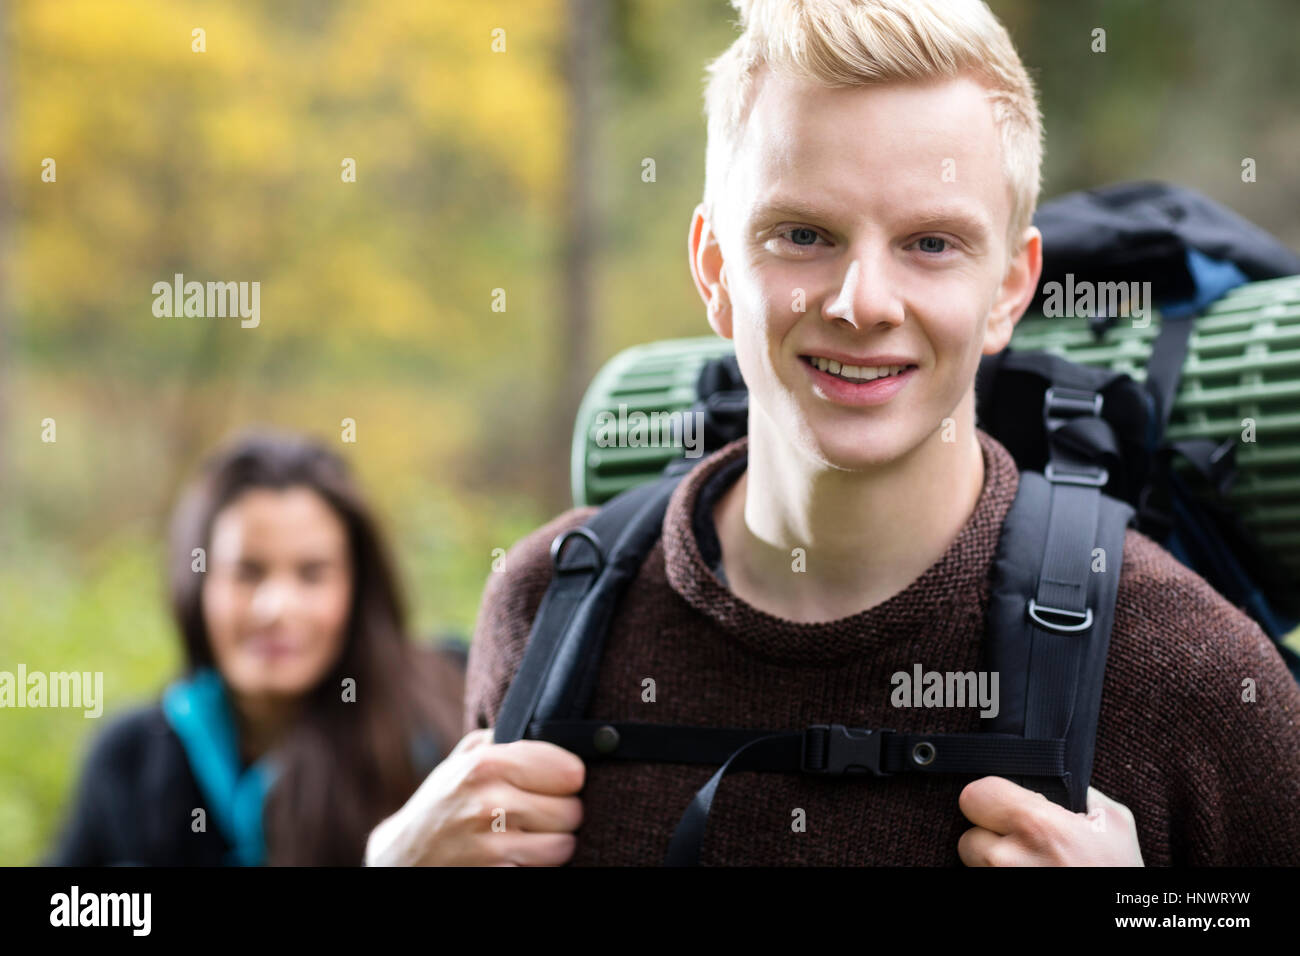 Portrait Of Confident Male Hiker In Forest - Stock Image